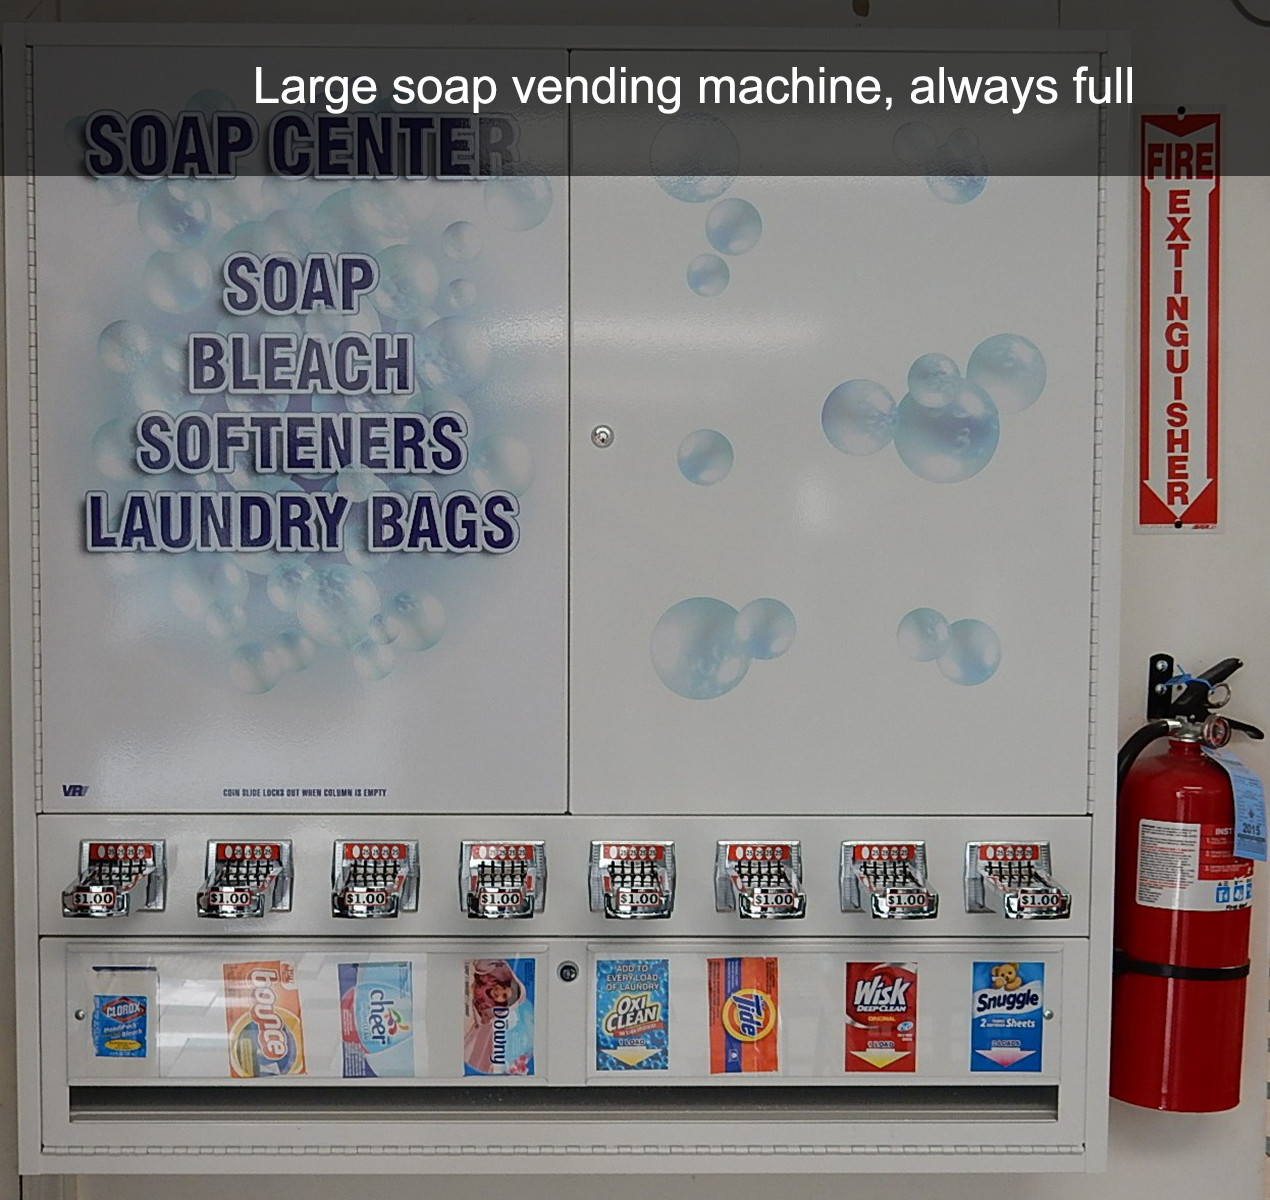 Large soap vending machine, always full